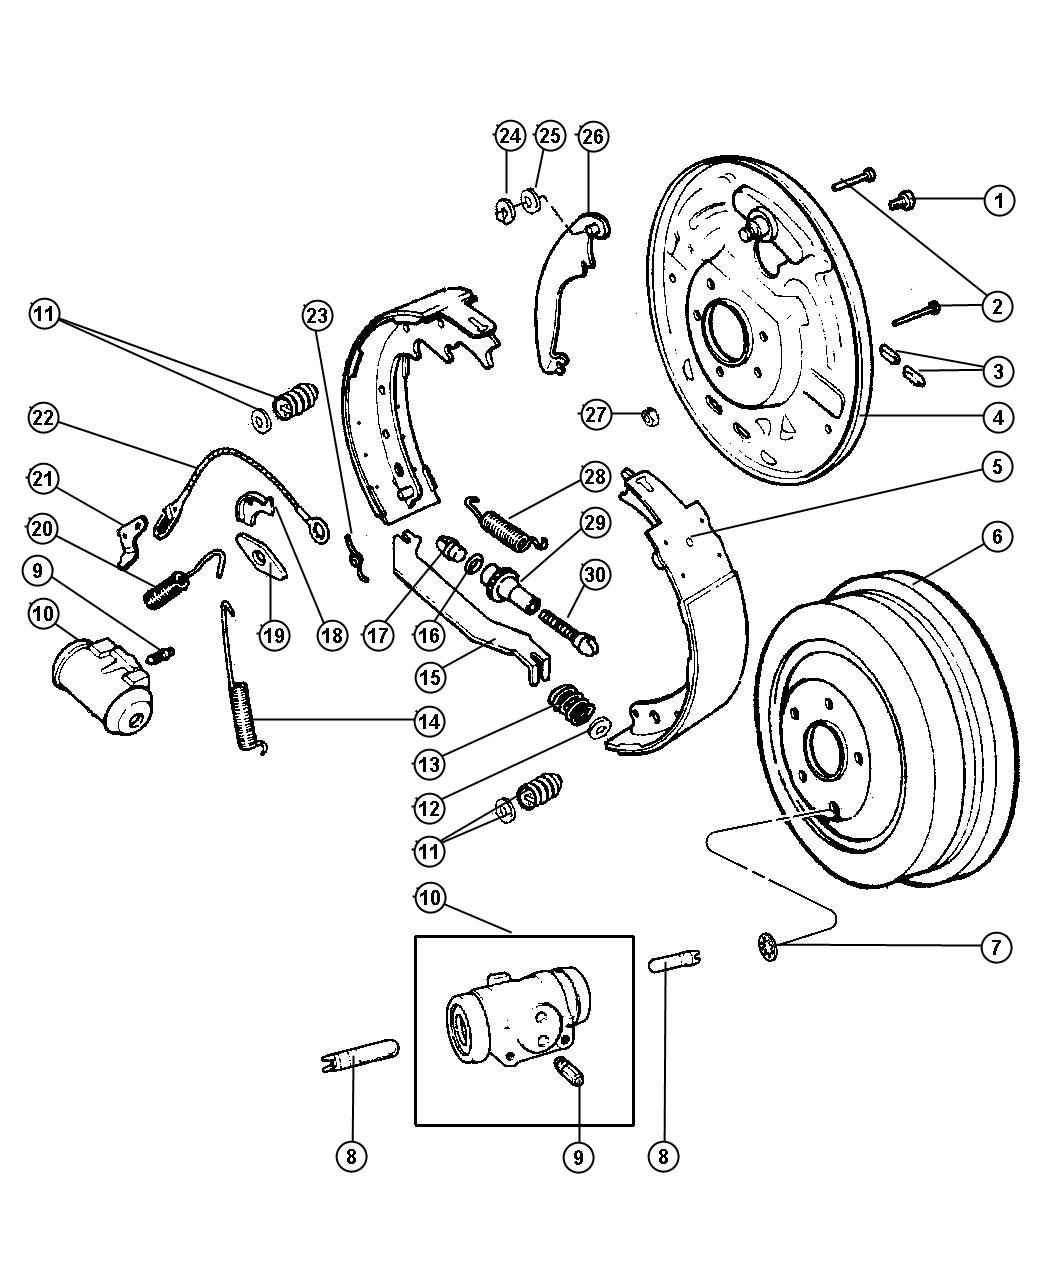 2002 Jeep Liberty Fuel Pump Wiring Diagram Library Service Manual Brake Replacement System 2008 Grand Cherokee